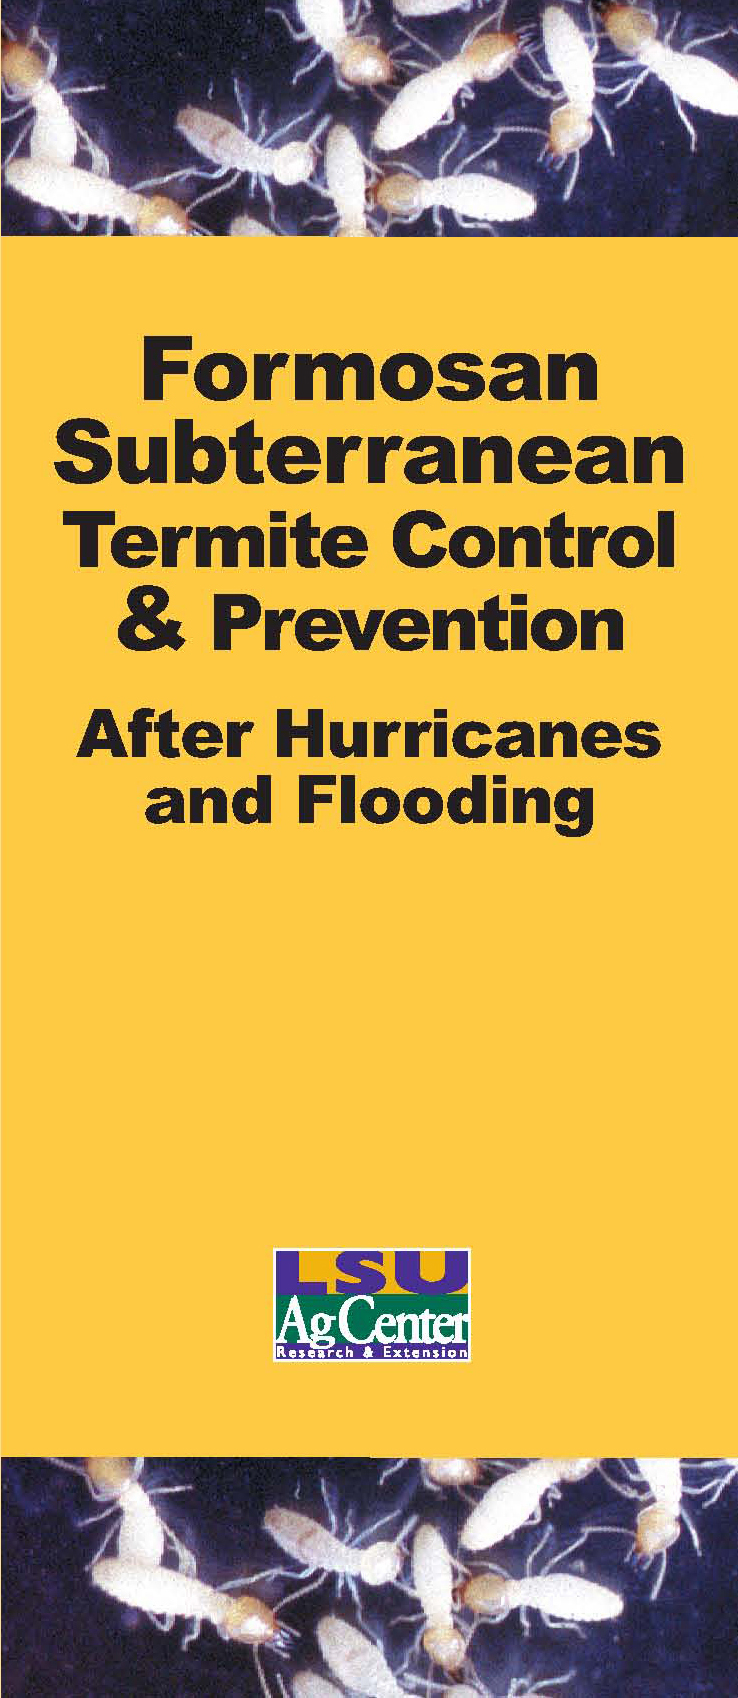 Formosan Subterranean Termite Control & Prevention After Hurricanes and Flooding